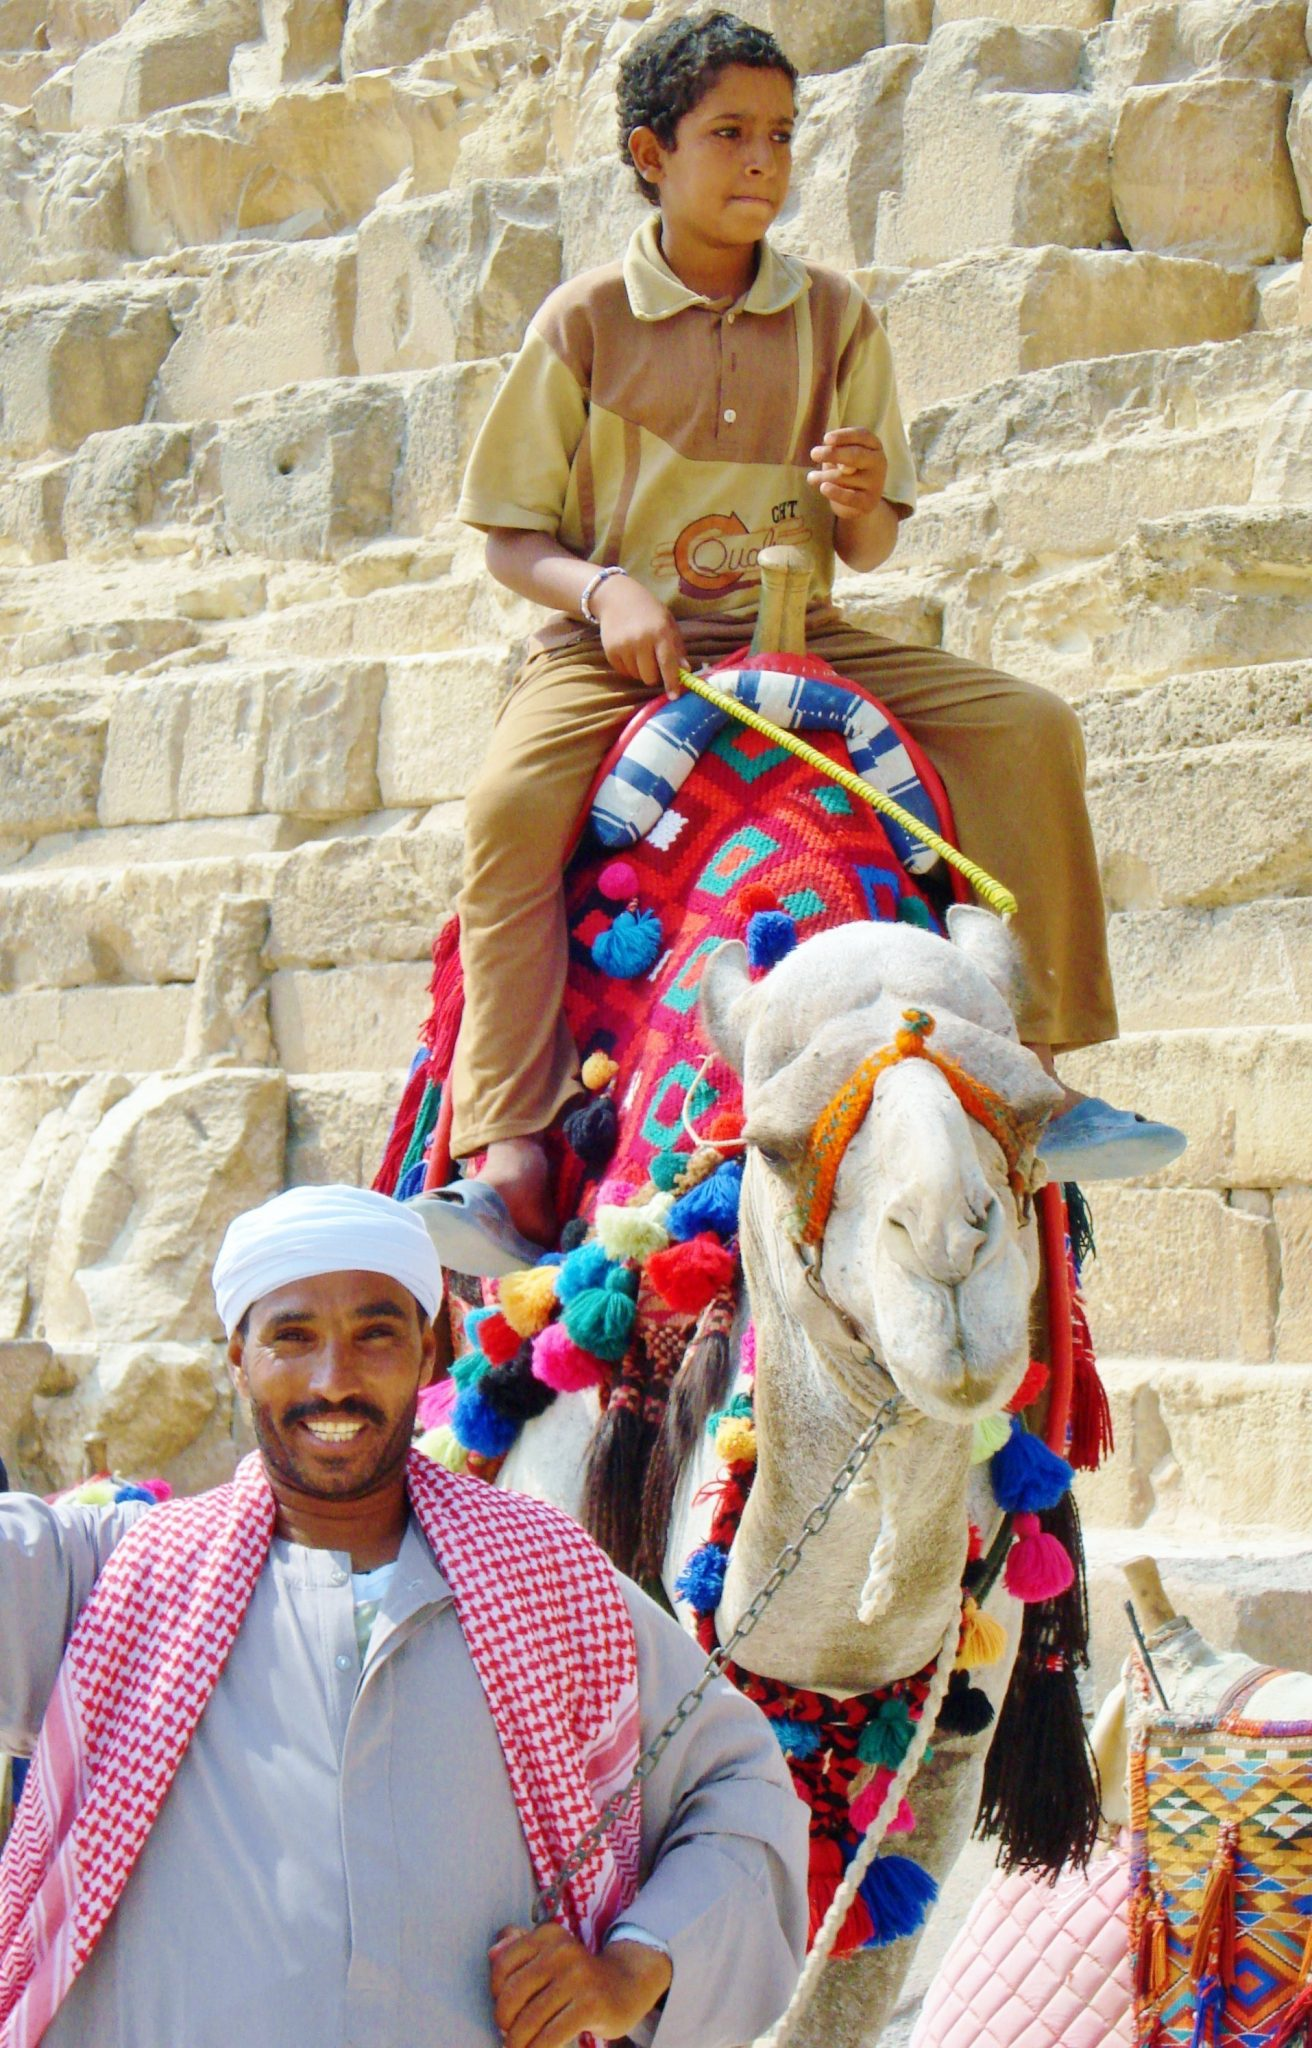 Boy on a colorfully decorated camel with a man standing next to him smiling at the camera in front of a pyramid in Giza, Egypt